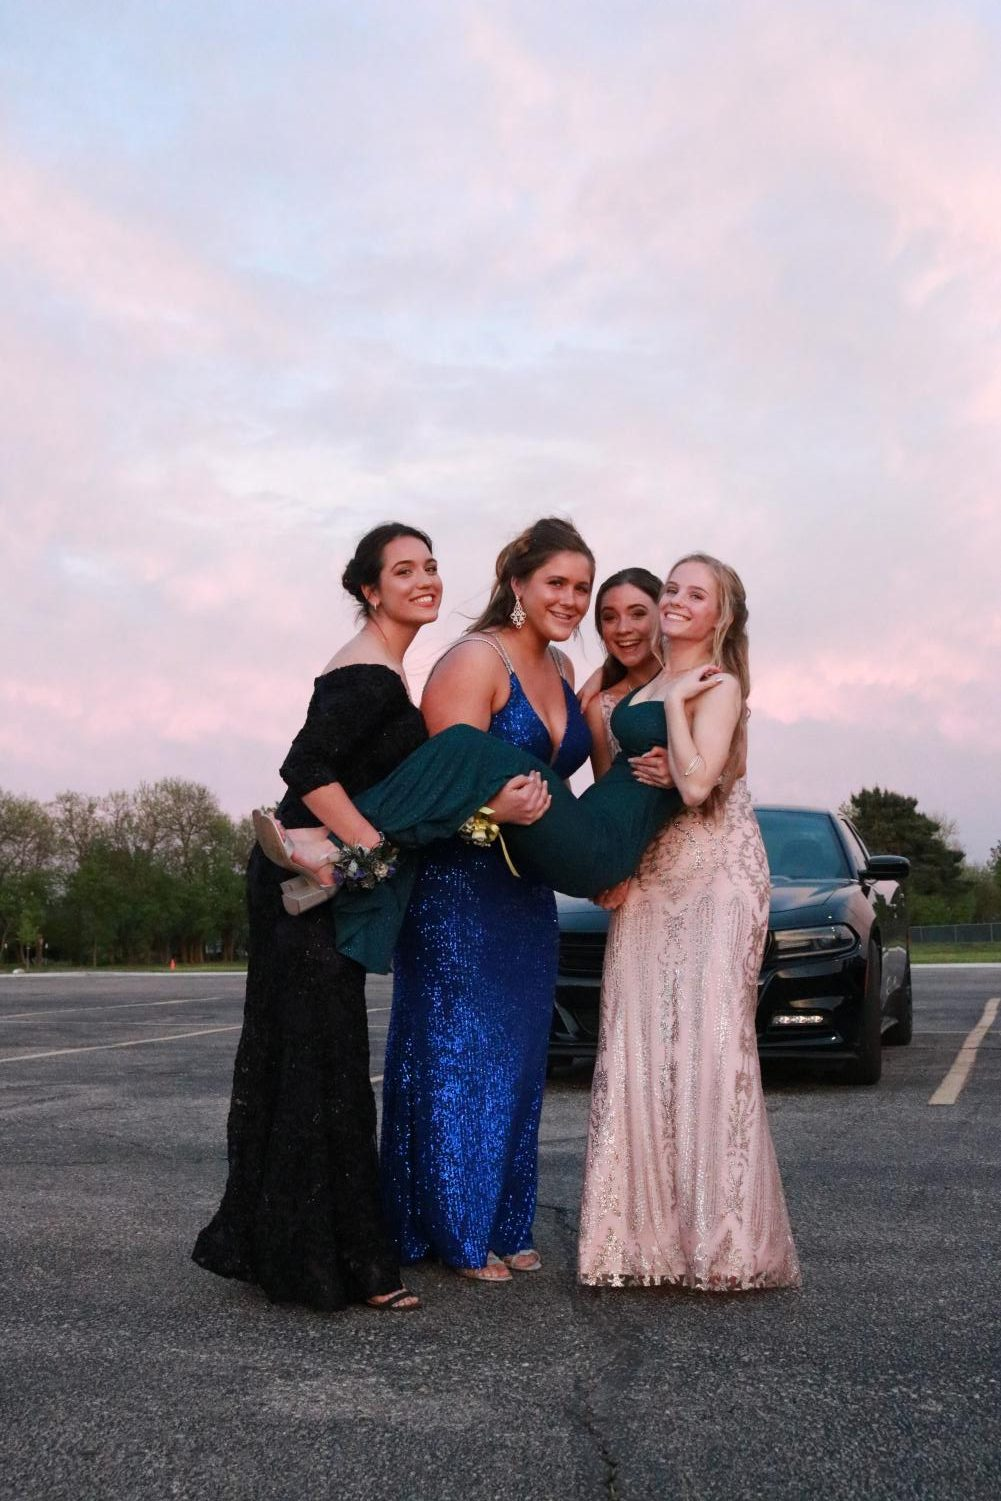 Prom+2021+%28Photos+by+Alyssa+Lai%29